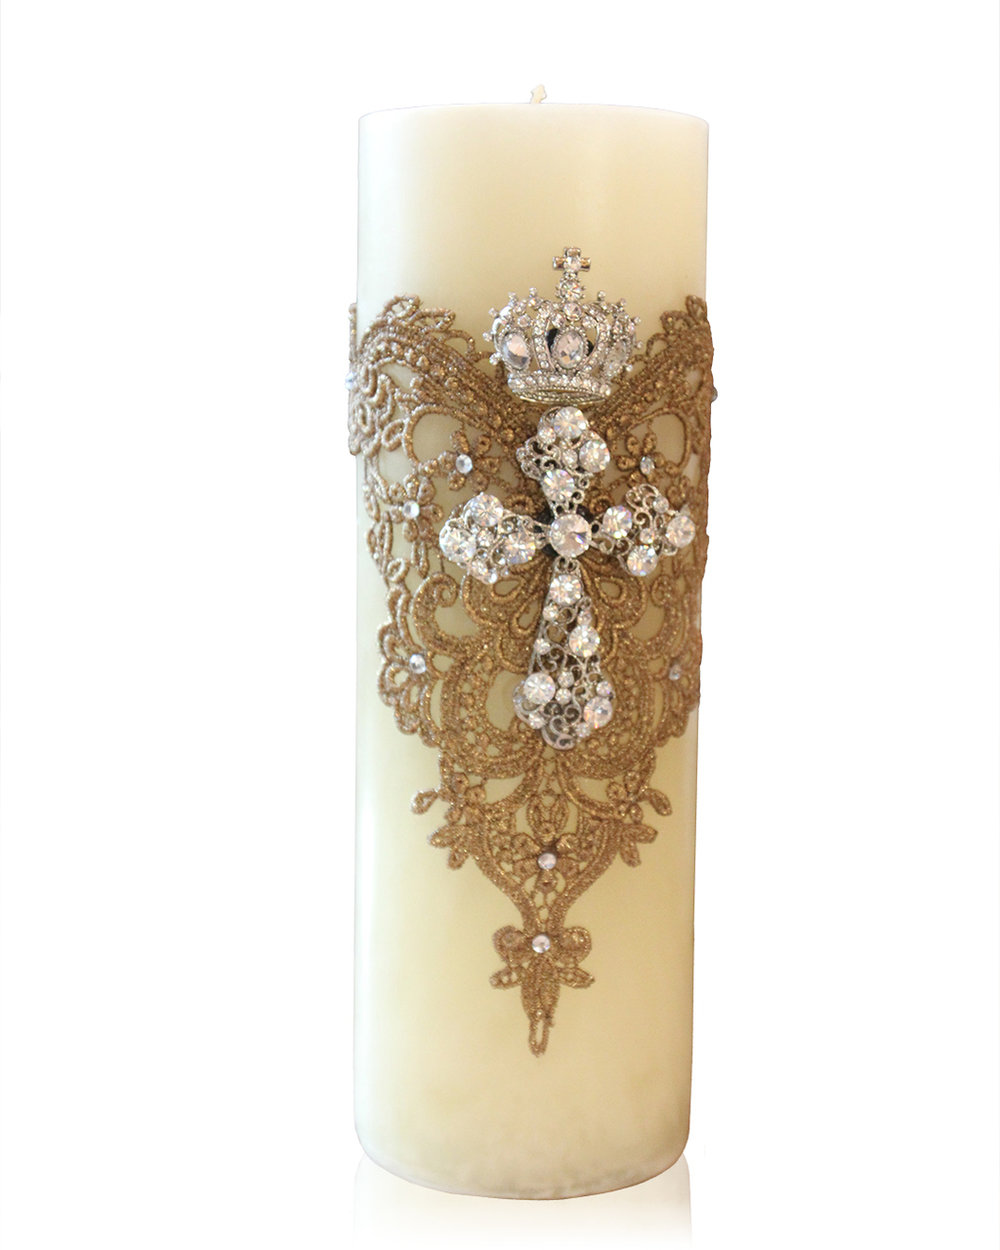 3. Cross Candle w/Lace